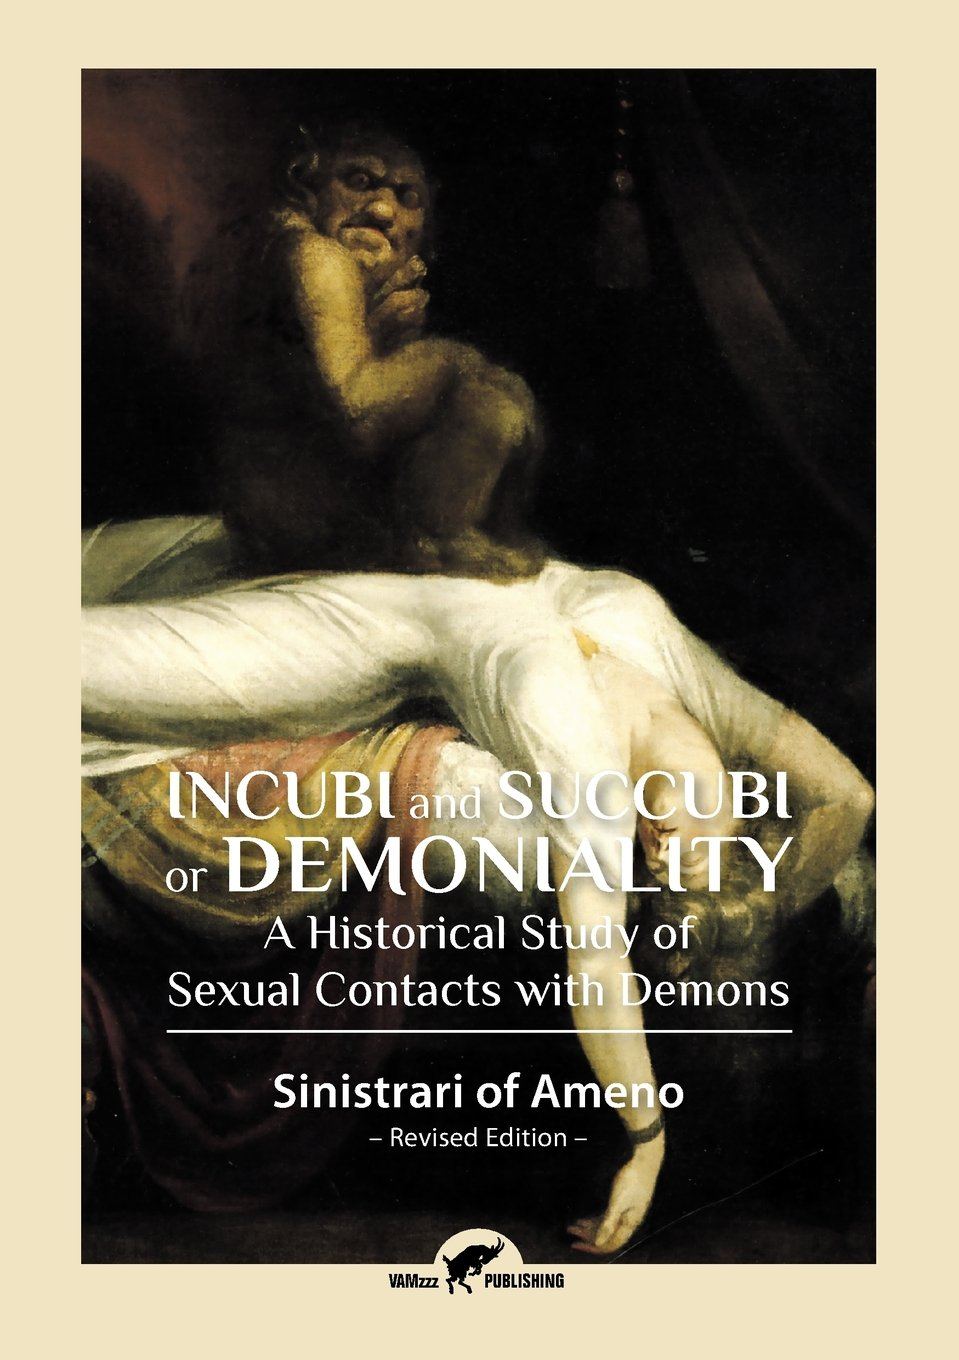 Download Incubi and Succubi or Demoniality: A Historical Study of Sexual Contacts with Demons PDF